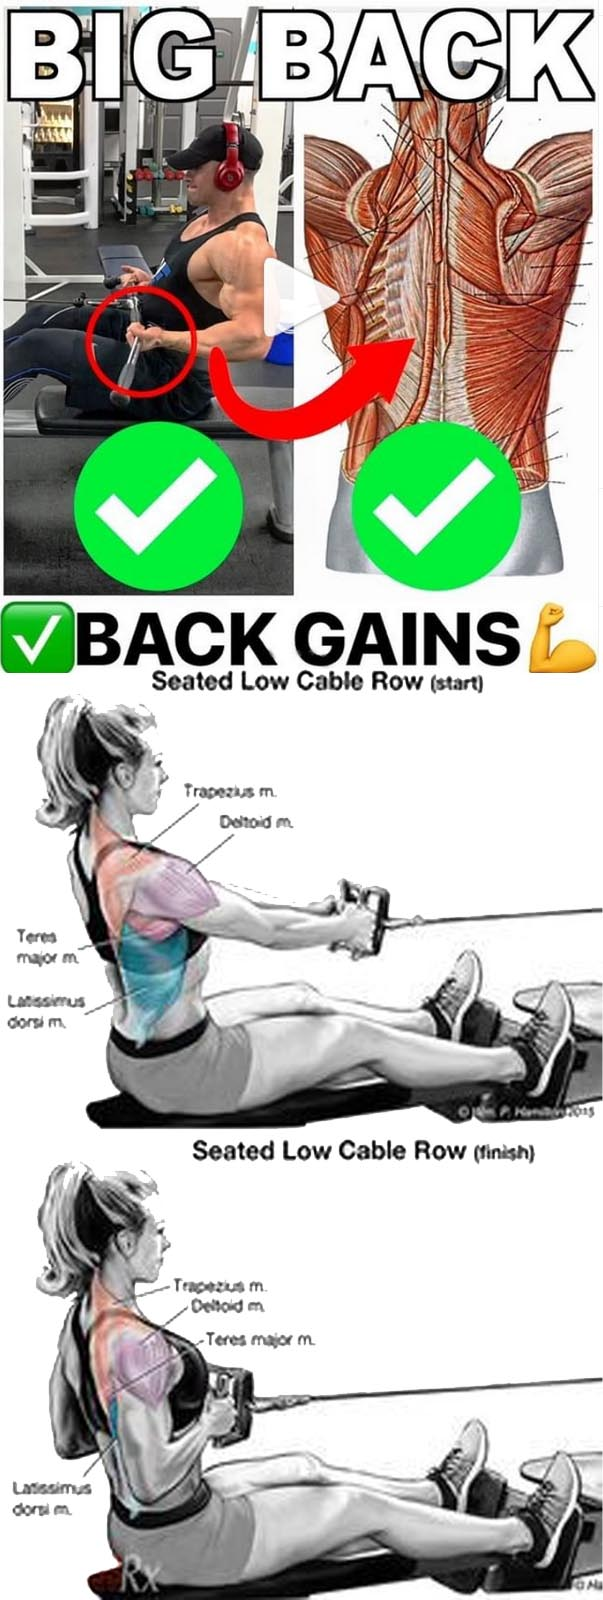 BIG BACK CABLE ROW